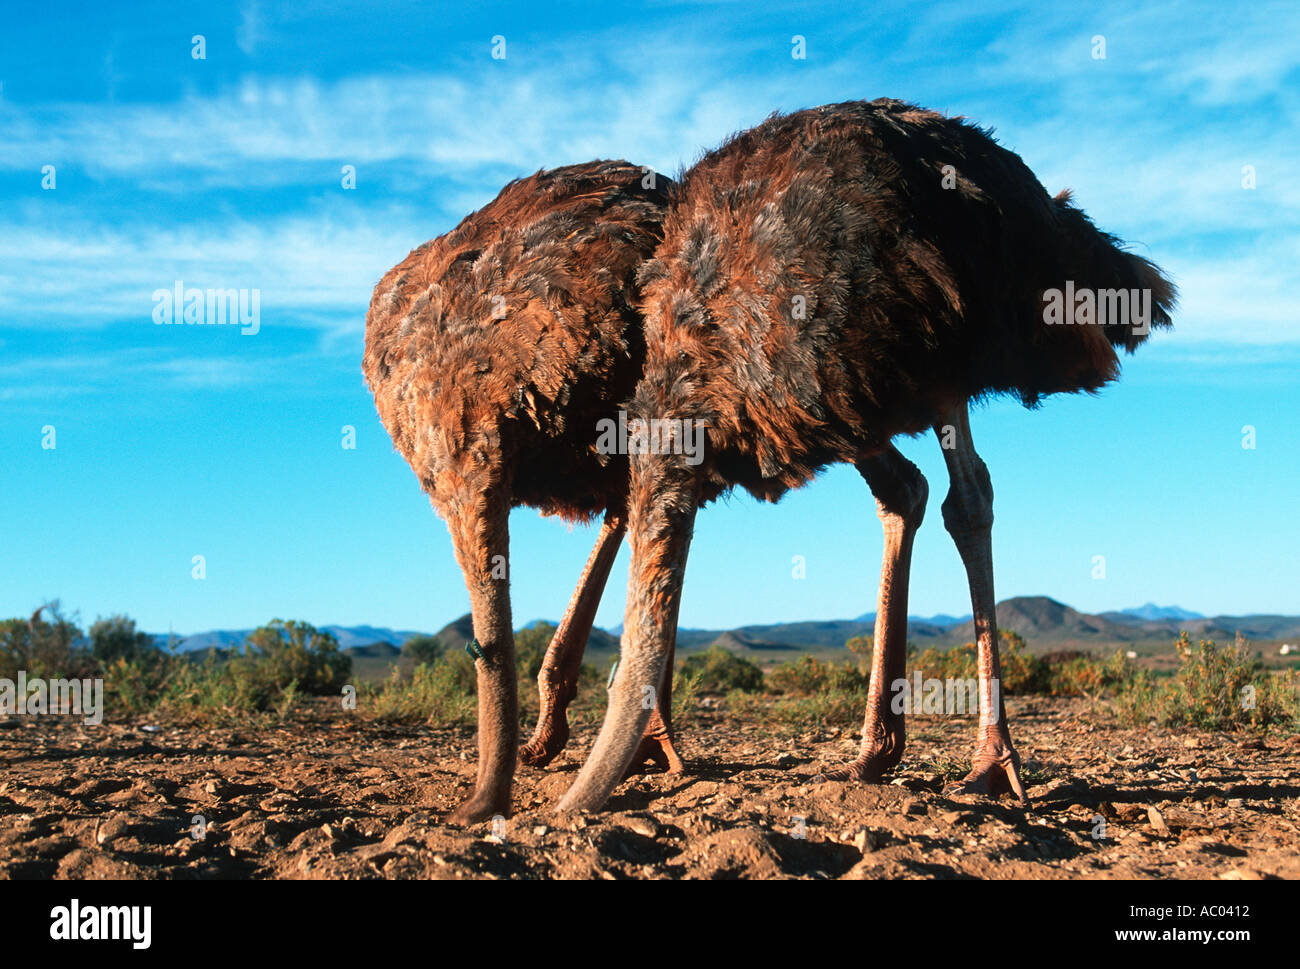 Ostrich Stick your head in the sand set up photograph not genuine ostrich behaviour Africa - Stock Image